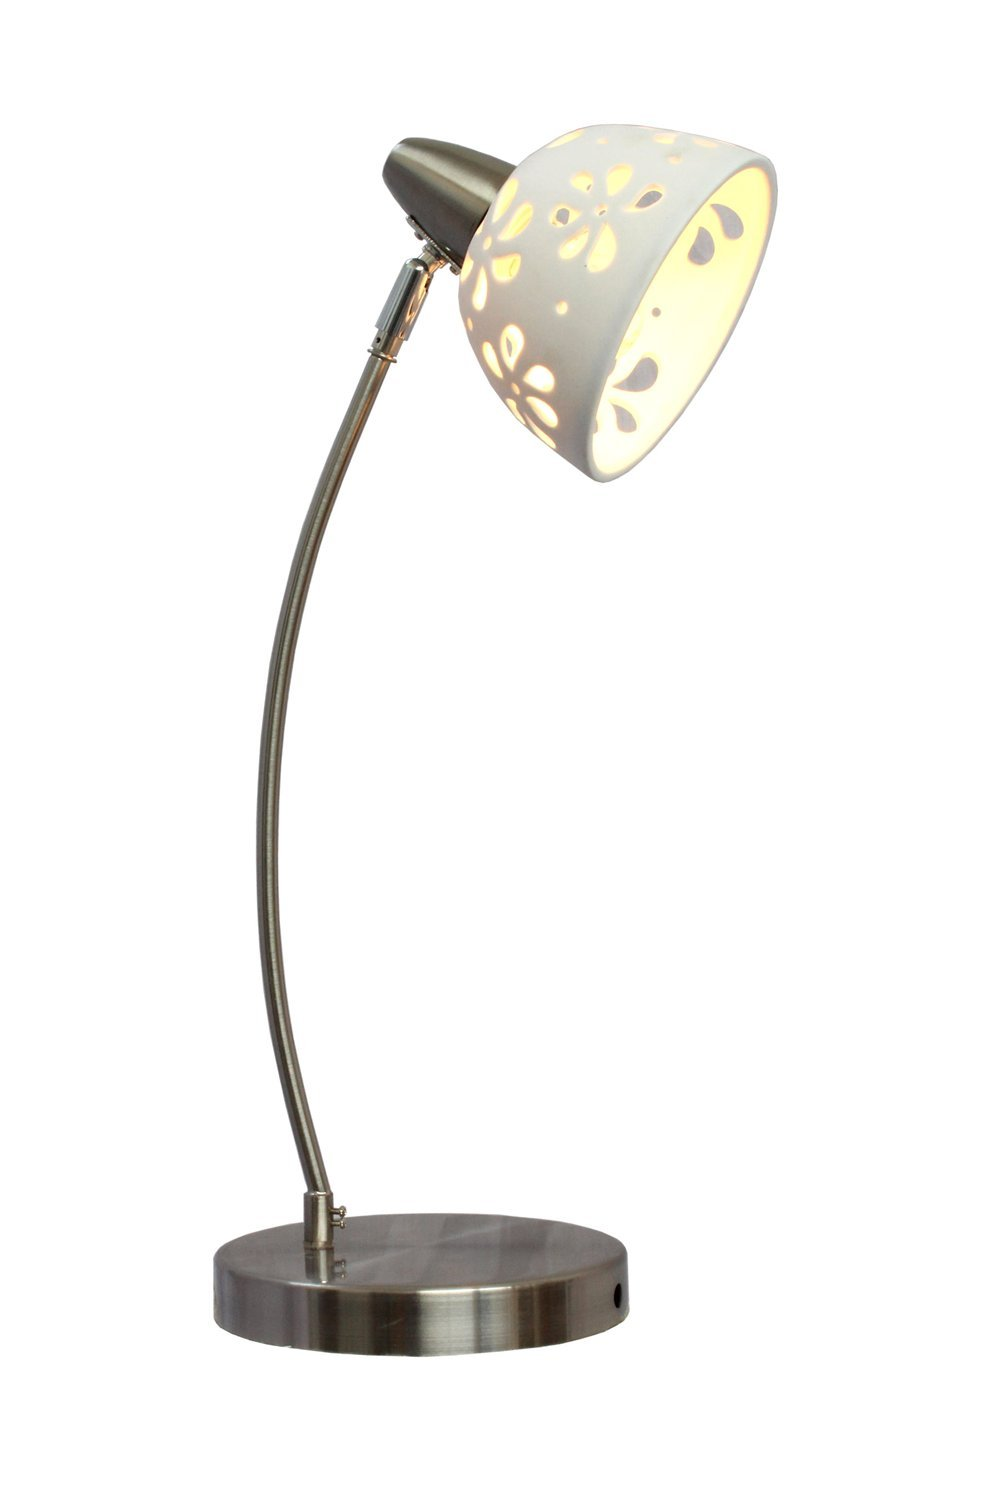 Simple Designs Ld1000 Wht White Porcelain Flower Desk Lamp Brushed